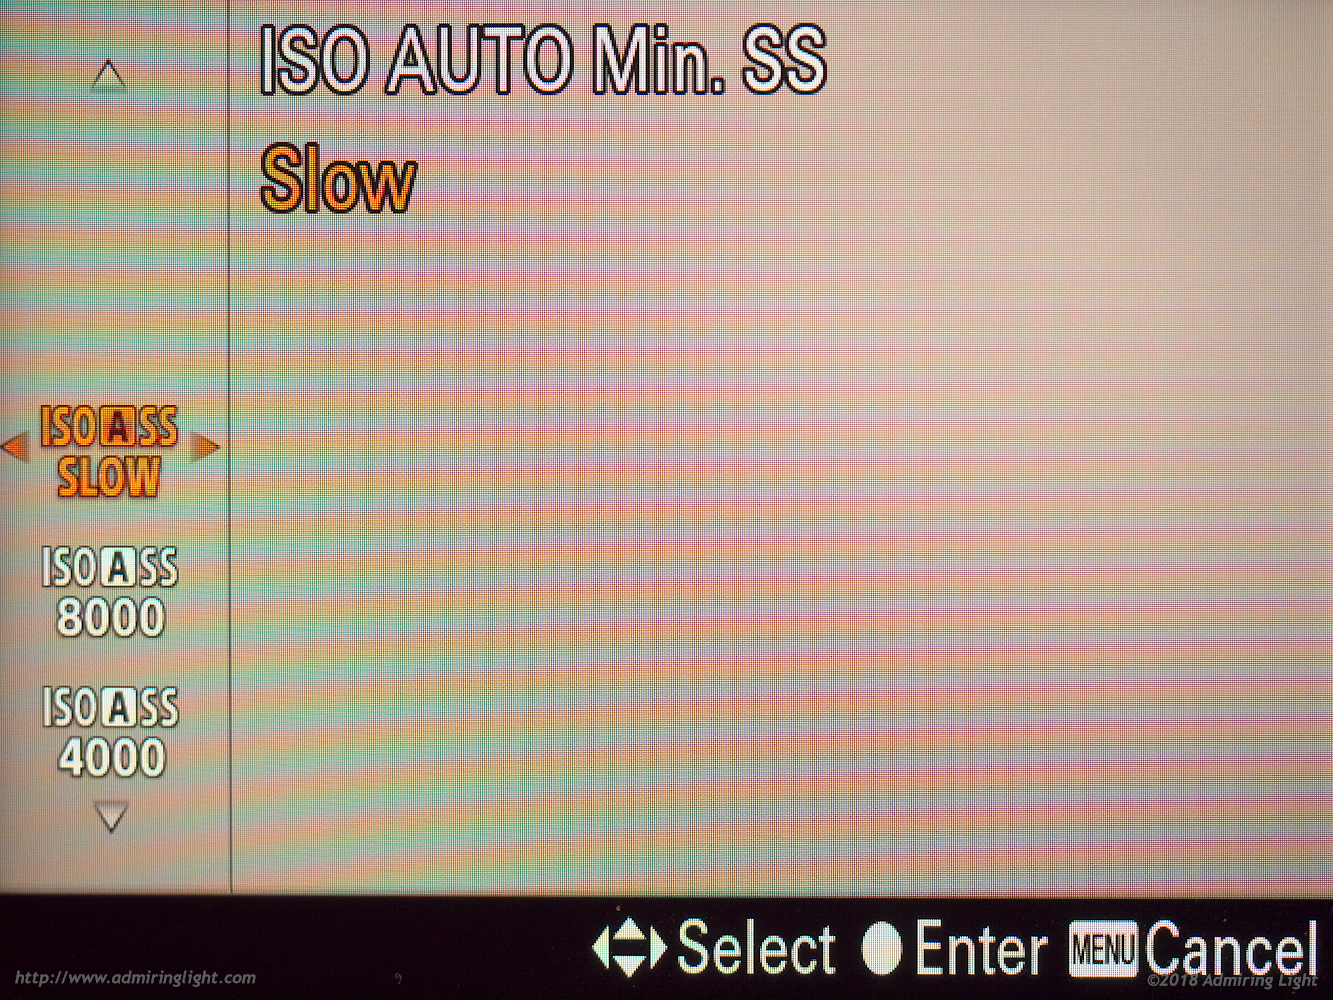 Auto ISO can be configured for slower or faster shutter speeds, or for direct selection of a minimum shutter speed